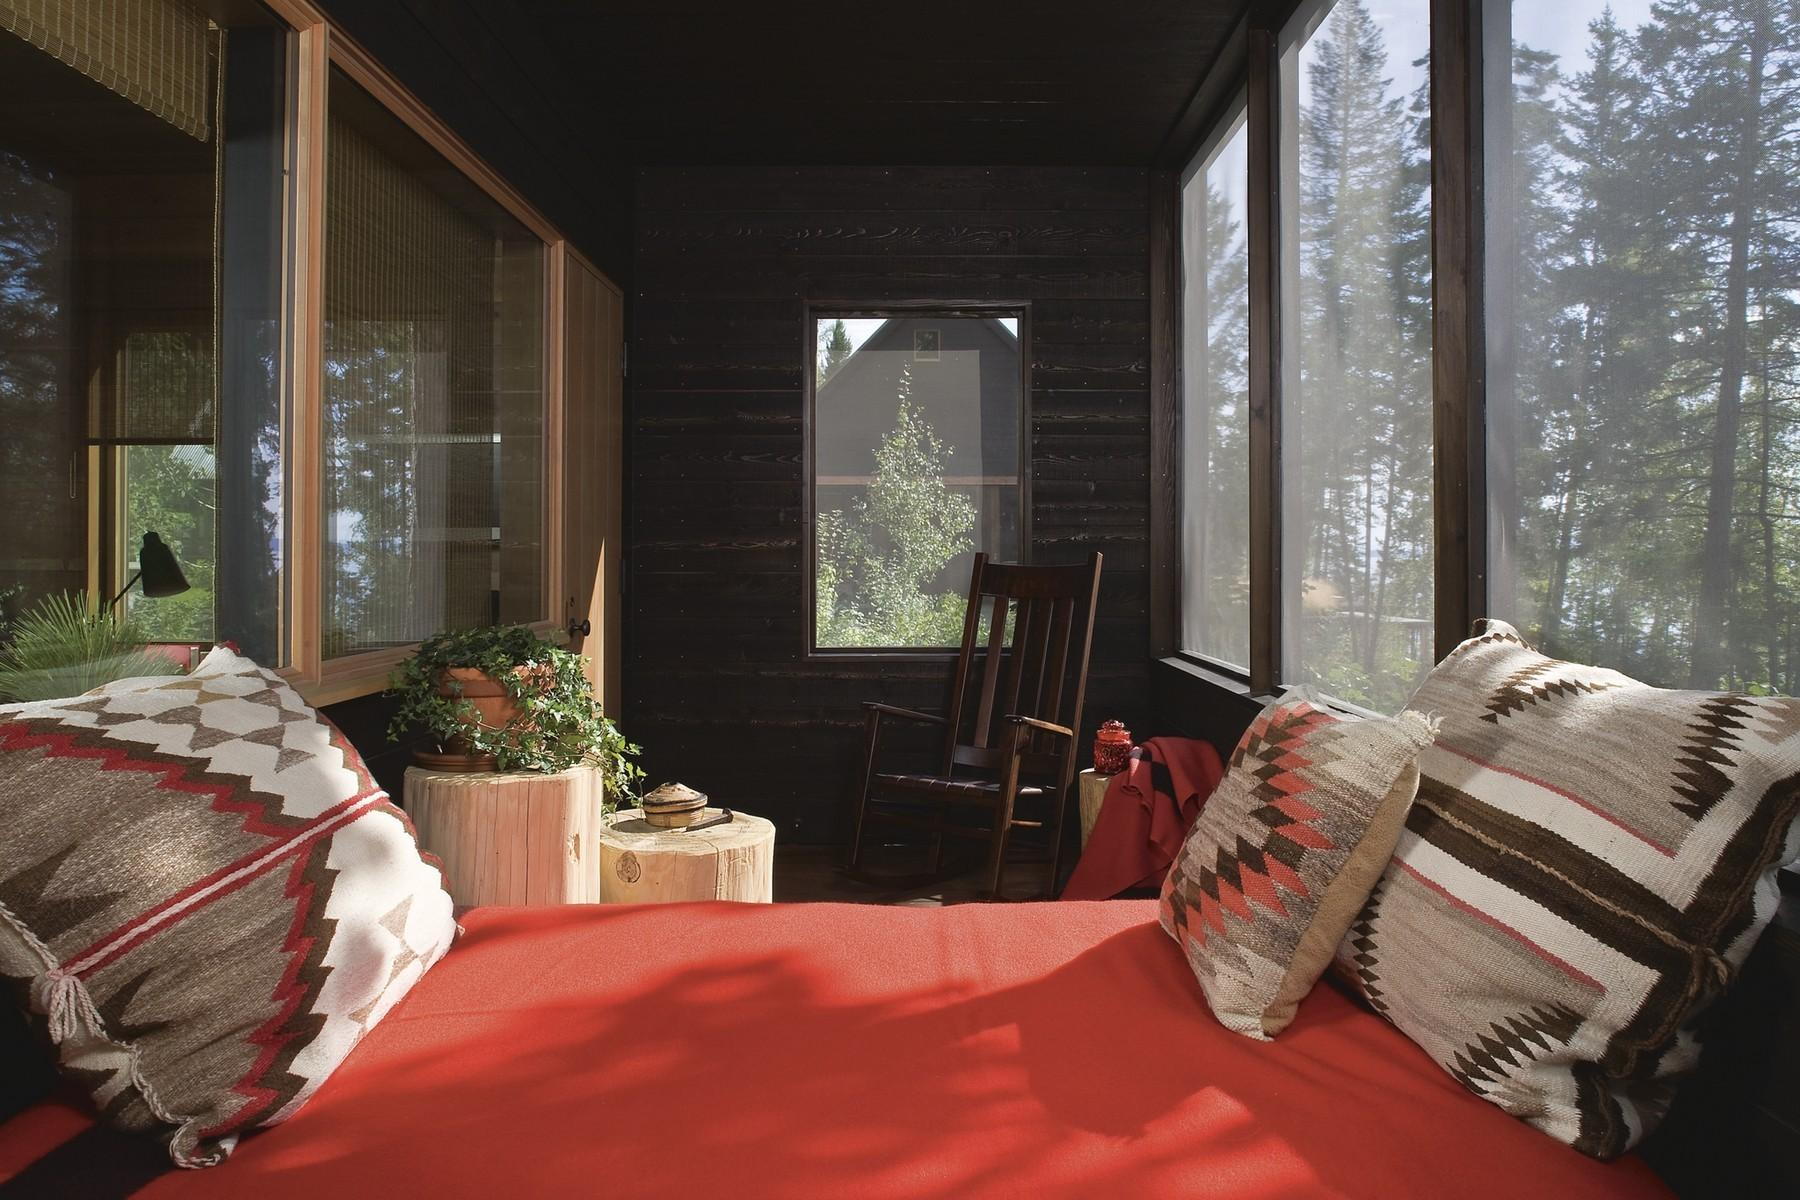 73.Guest House Sunroom 2 (1)